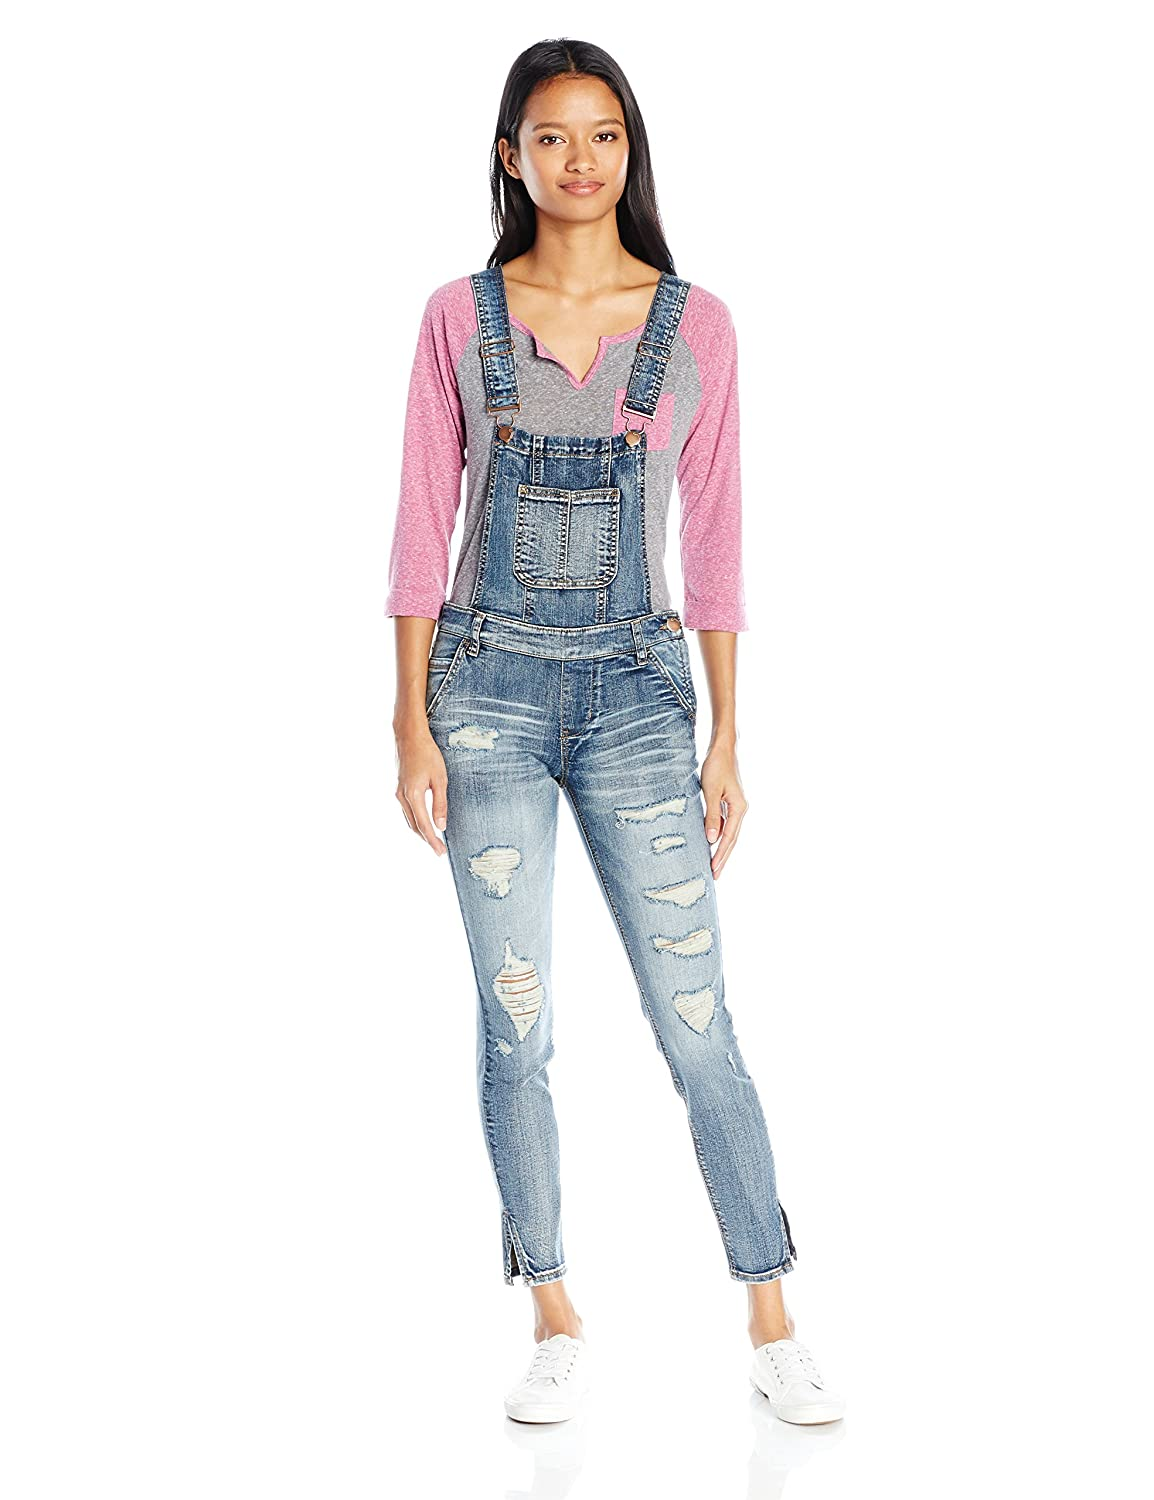 dollhouse Women's Complete Destruction Overall Dollhouse Apparel 7202